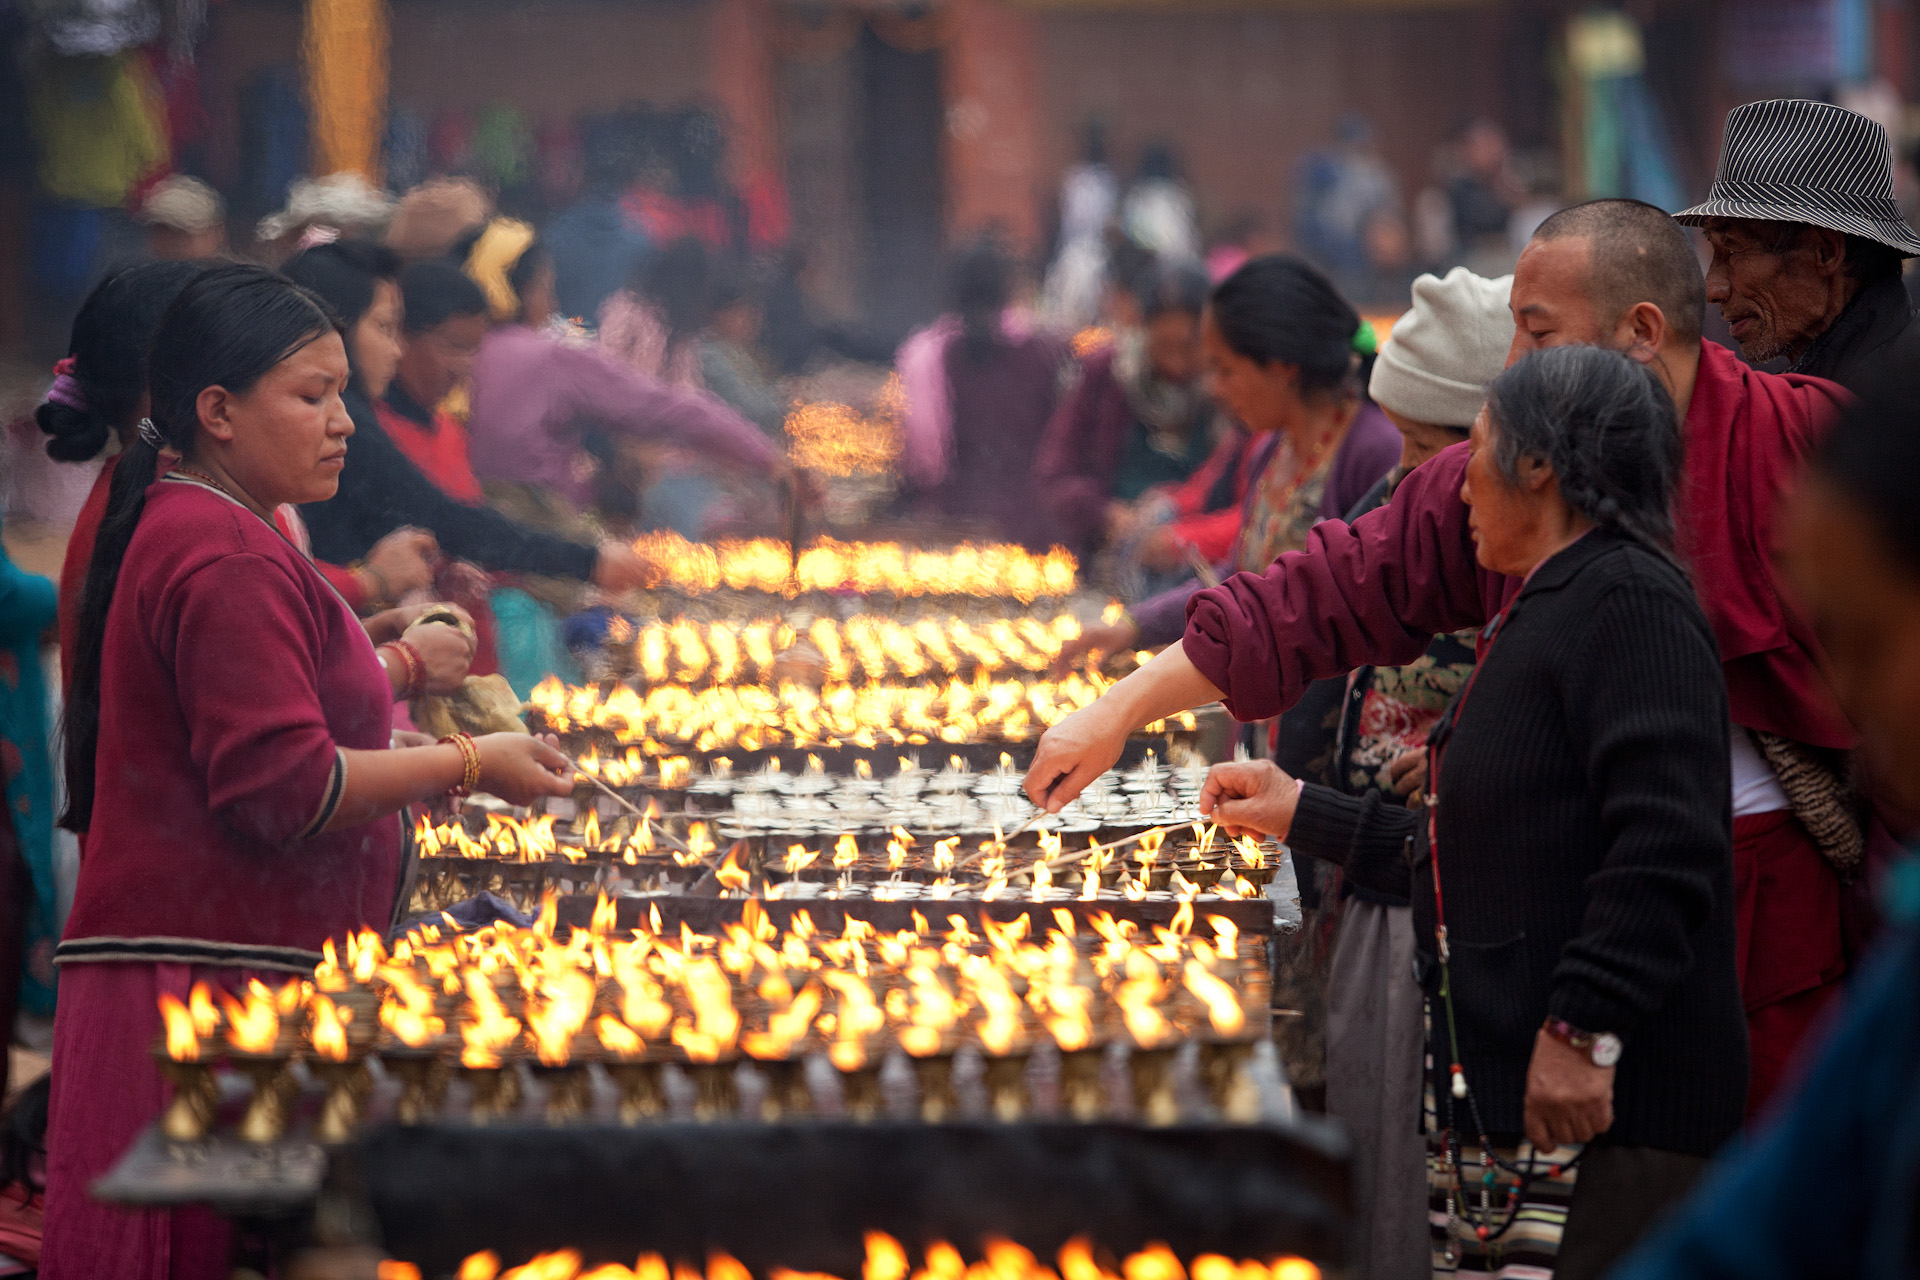 Nepal-Kathmandu-Travel-Boudhanath-Buddhism-Ceremony-lamps_1.JPG